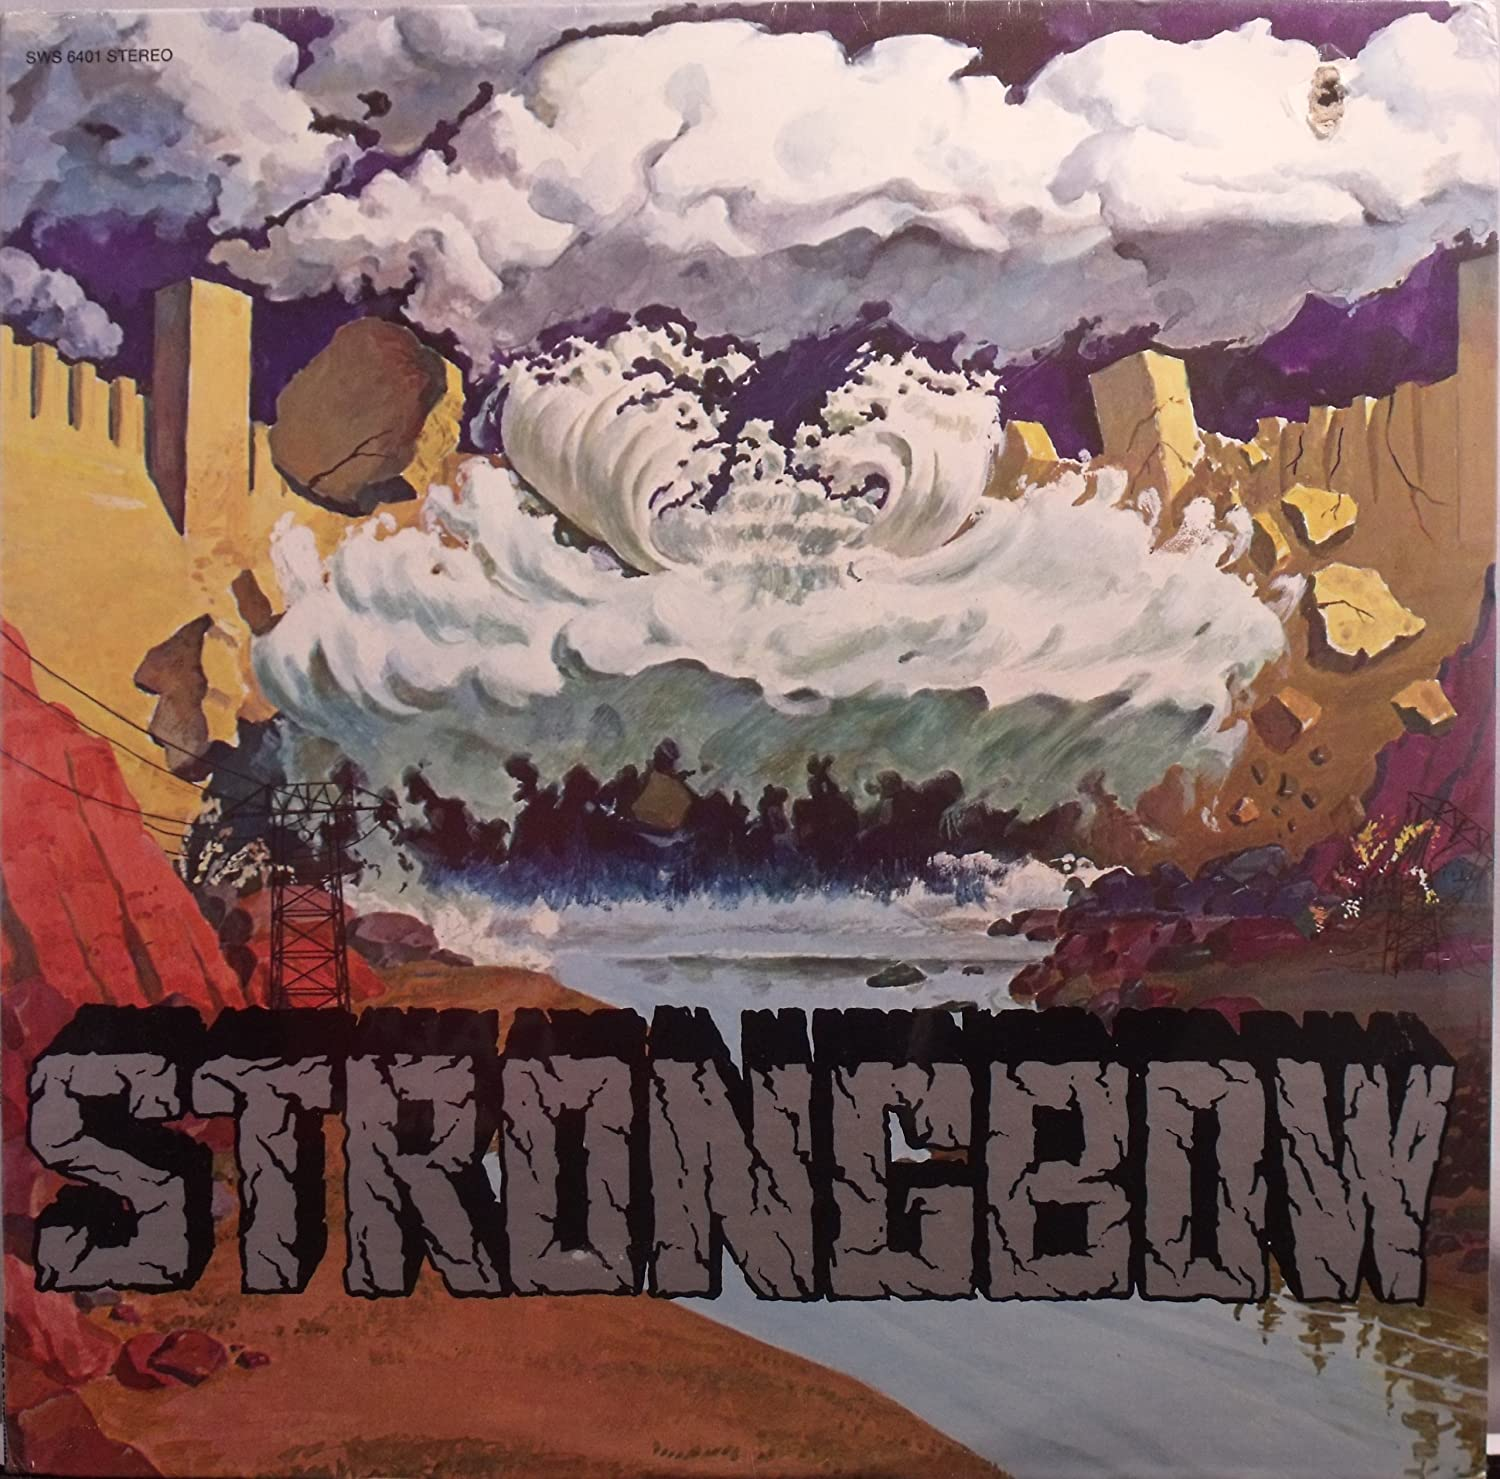 60af690af STRONGBOW - strongbow LP - Amazon.com Music